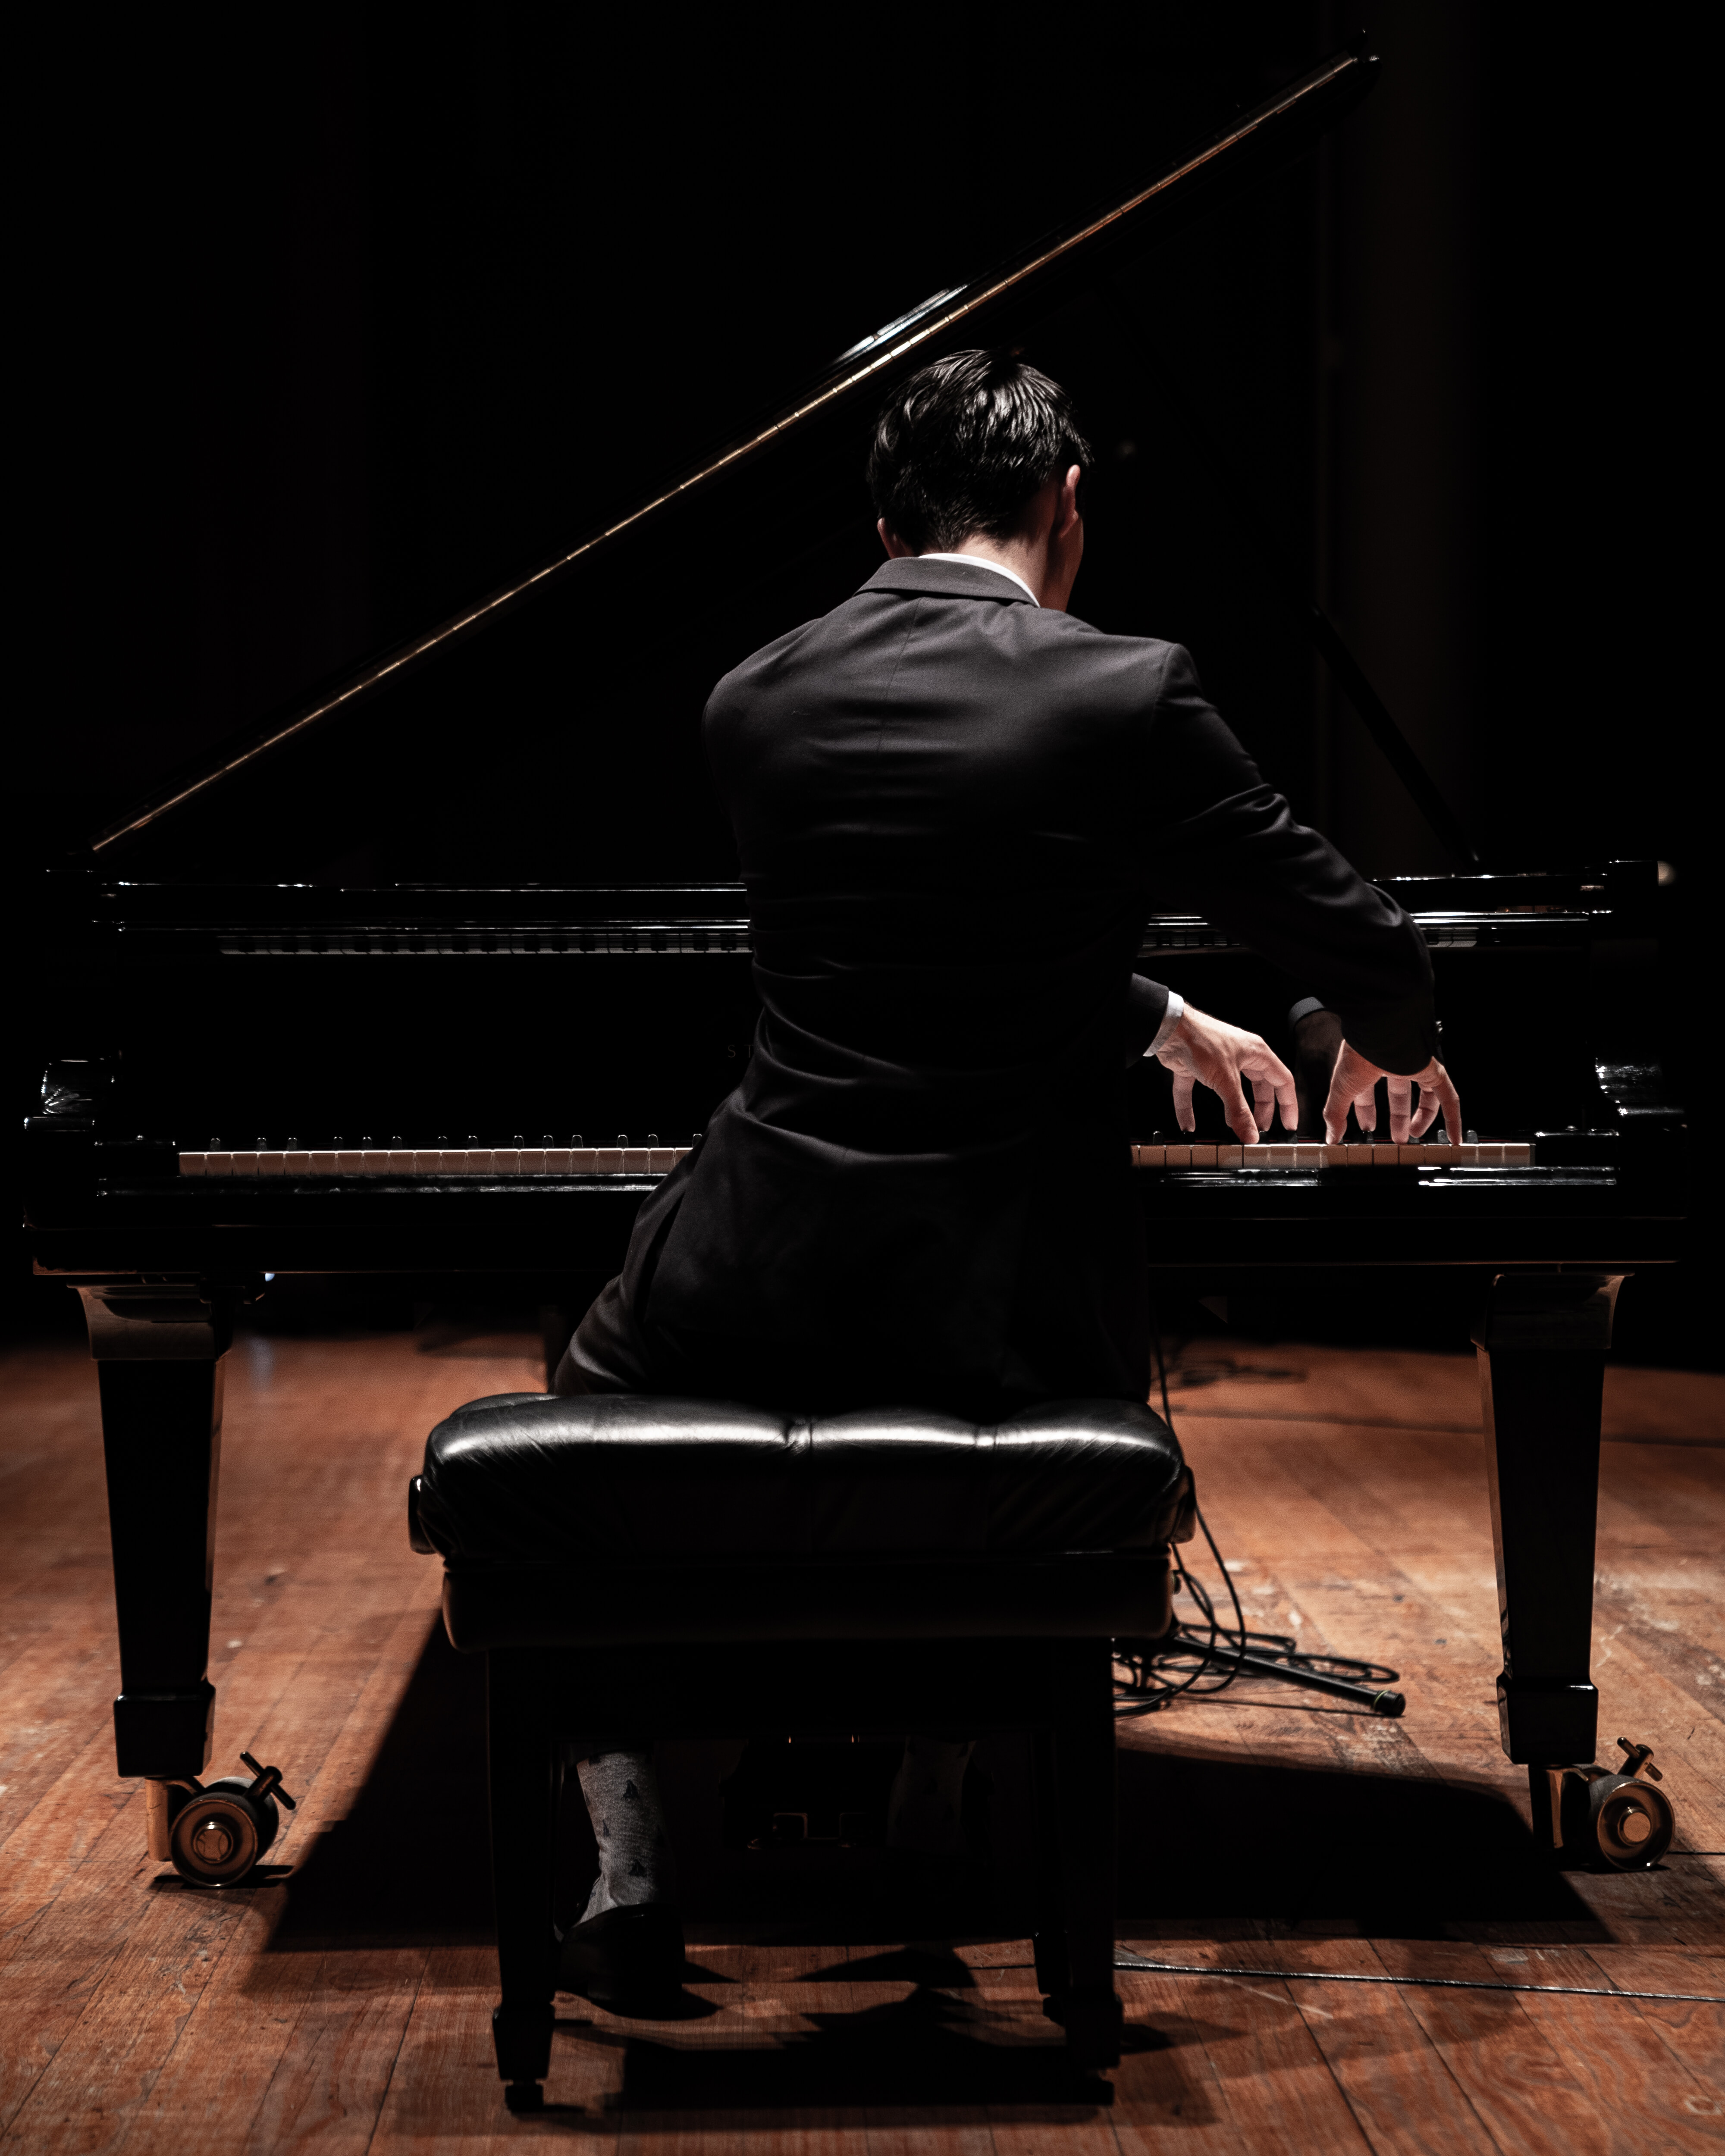 Pianist from behind playing a grand piano with excellent technique.